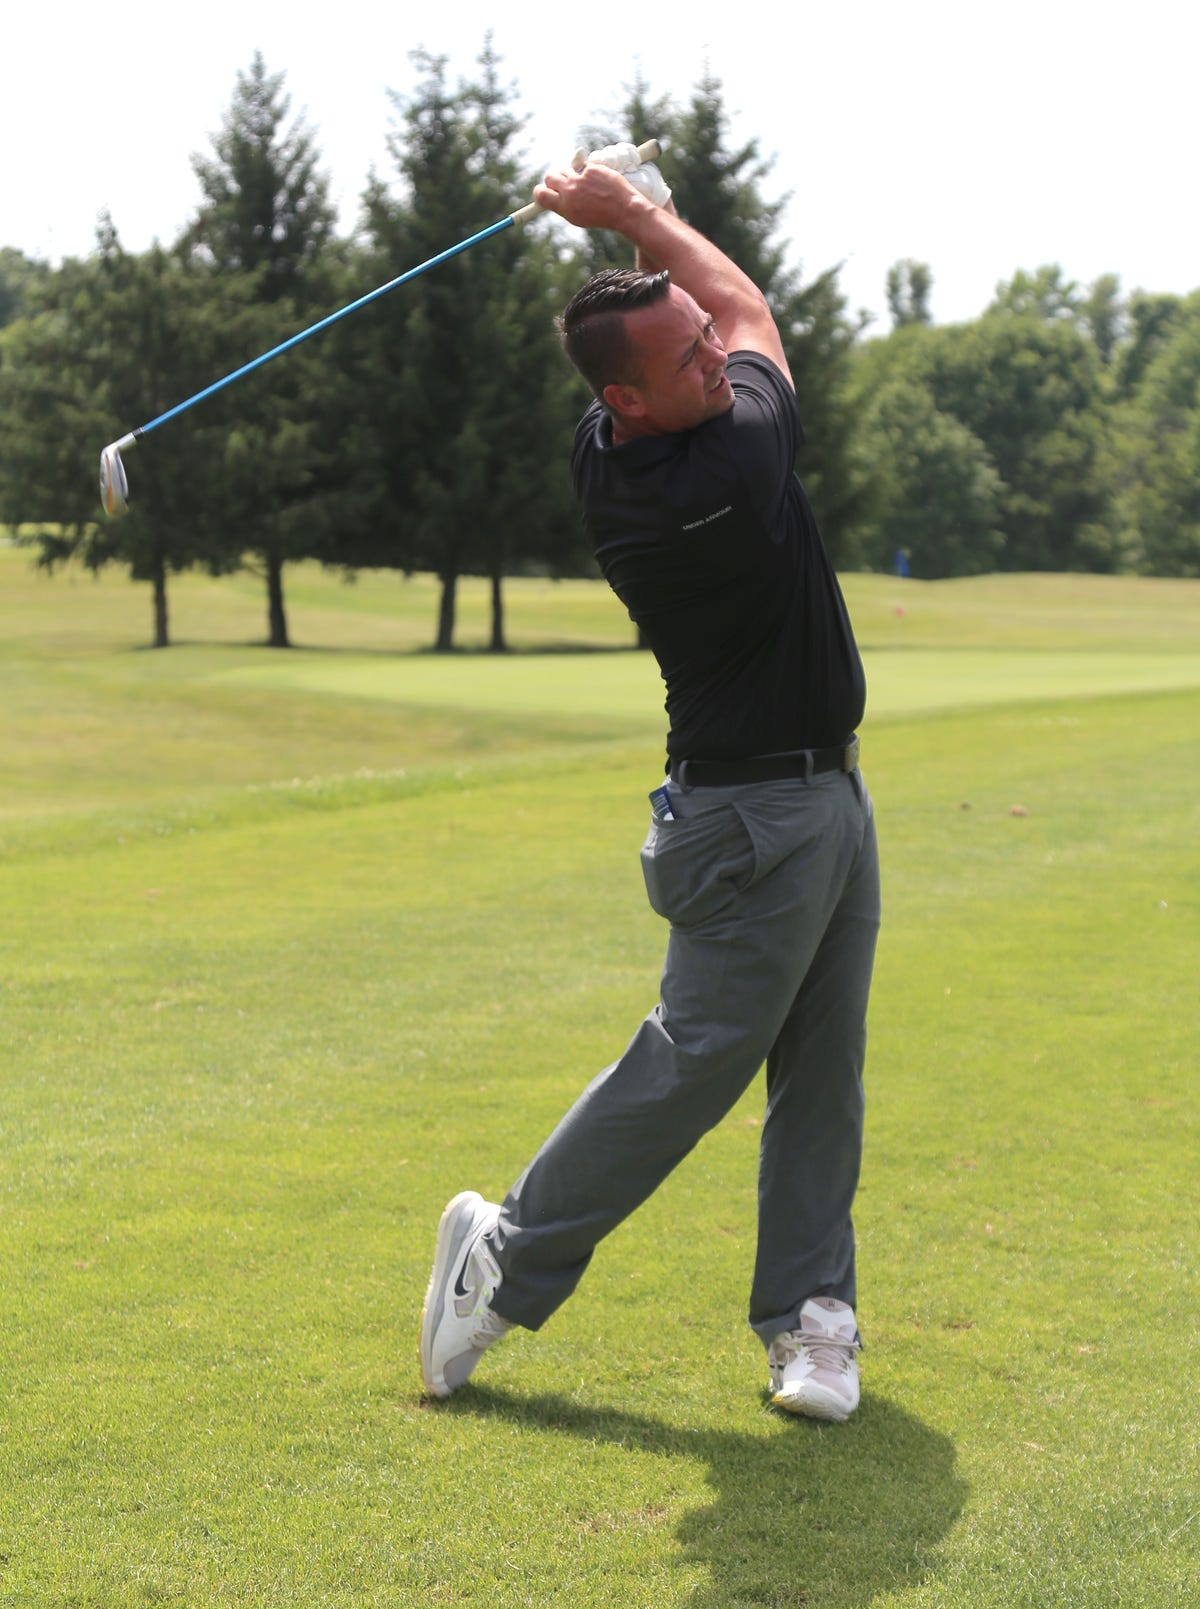 6 tips for mastering your long irons on the golf course